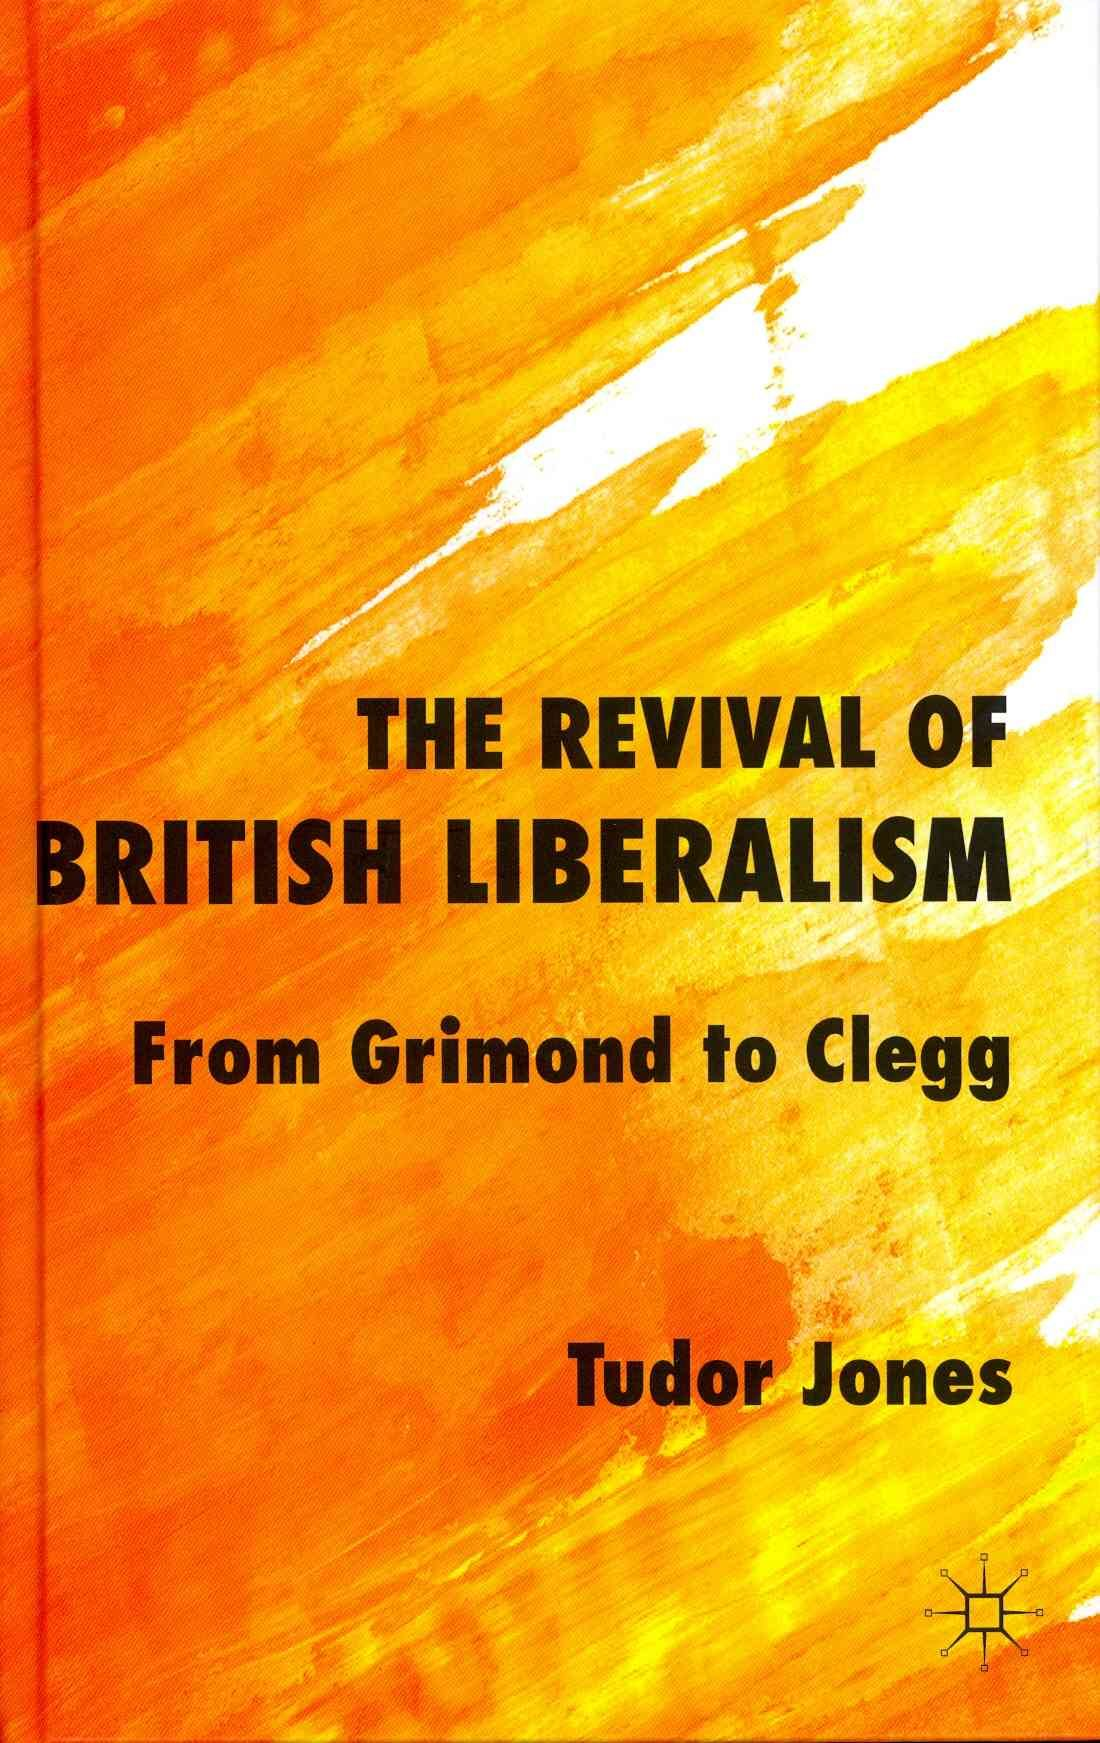 The Revival of British Liberalism: From Grimond to Clegg